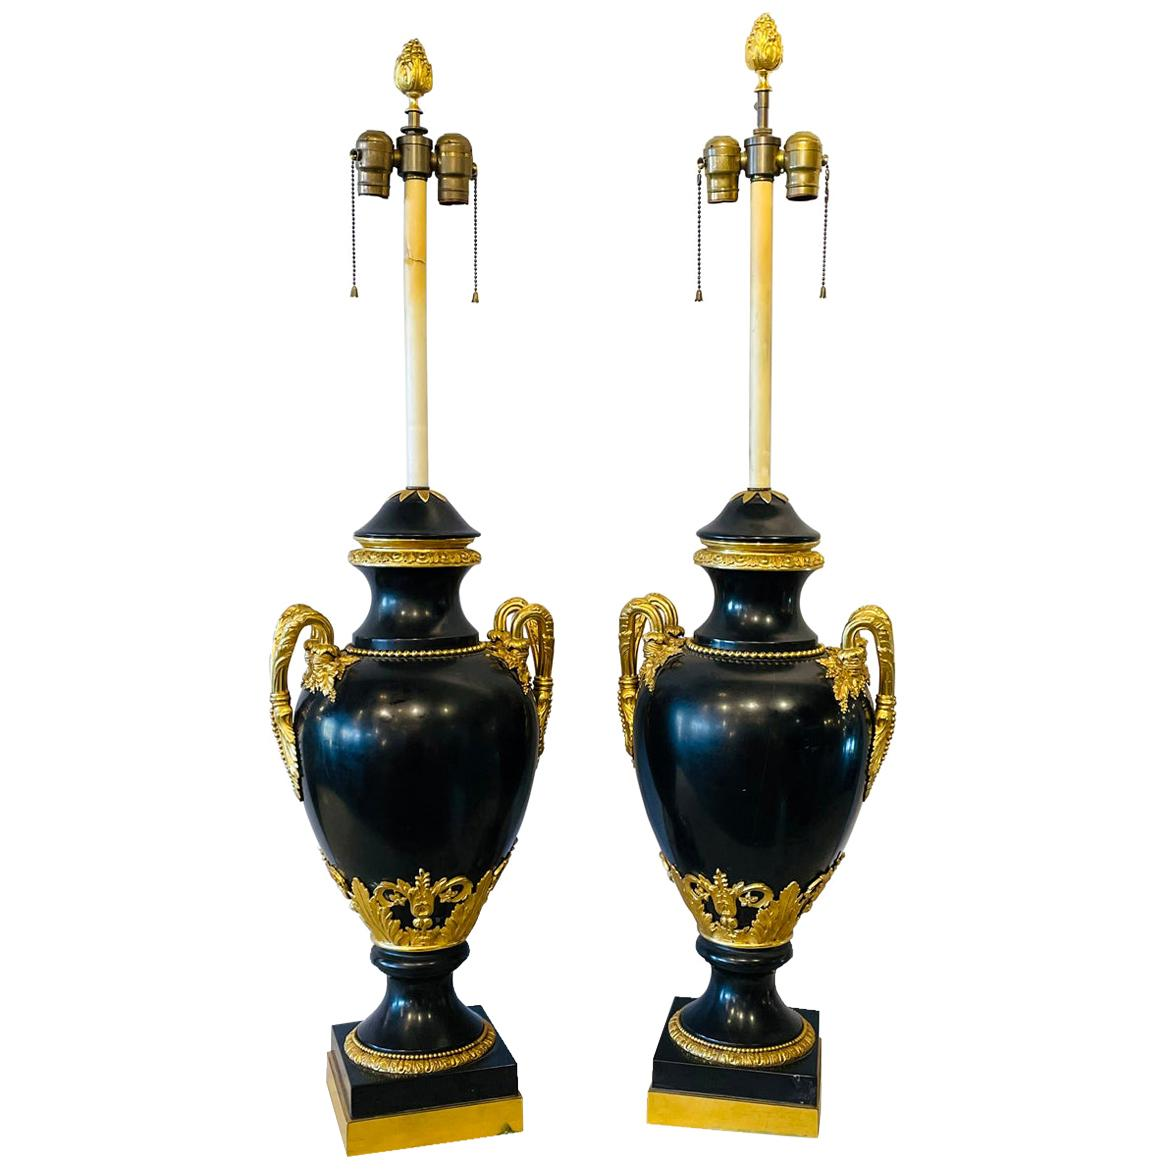 Pair of 19th Century Doré and Black Marble Table Lamps or Urns